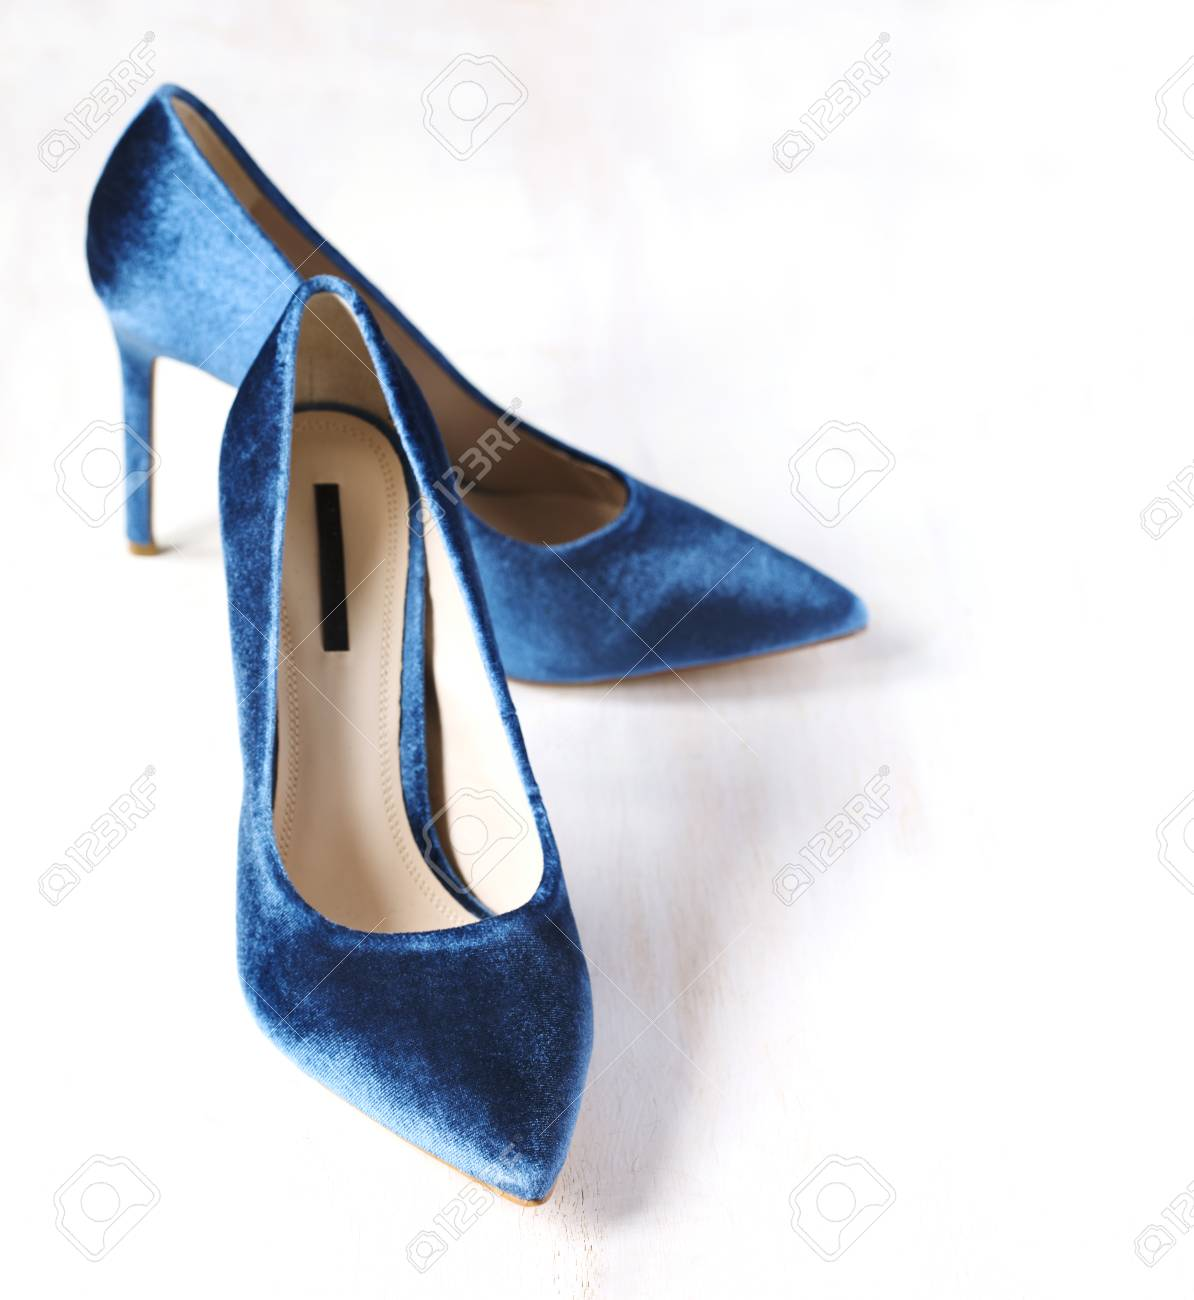 8baef2283a Stock Photo - Velvet blue women high heel shoes. Velvet pumps